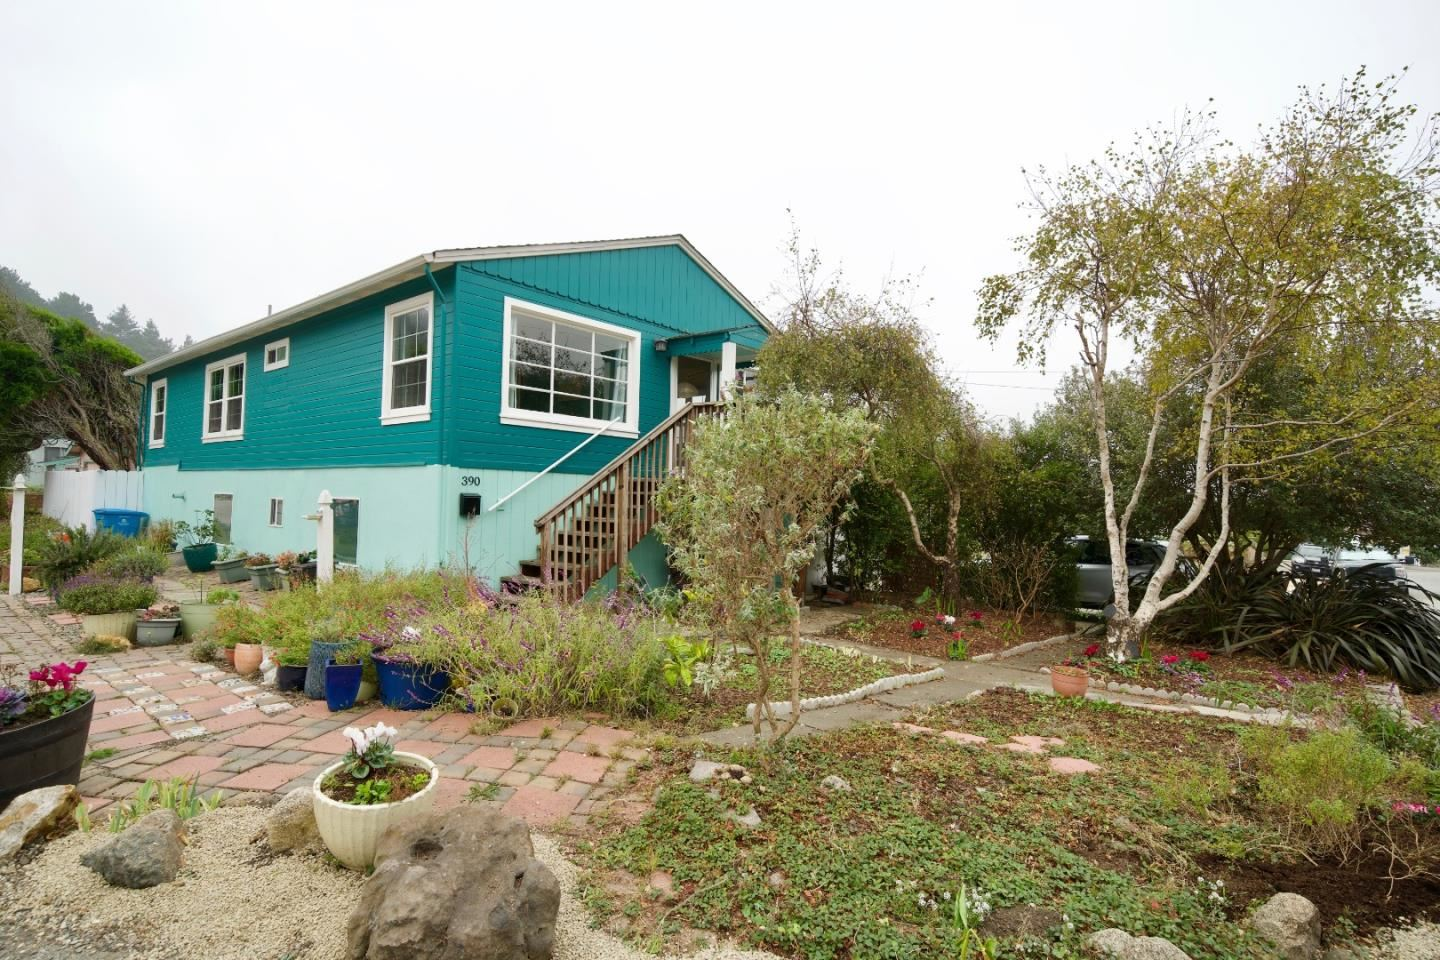 Photo for 390 Pacific AVE, PACIFICA, CA 94044 (MLS # ML81775081)